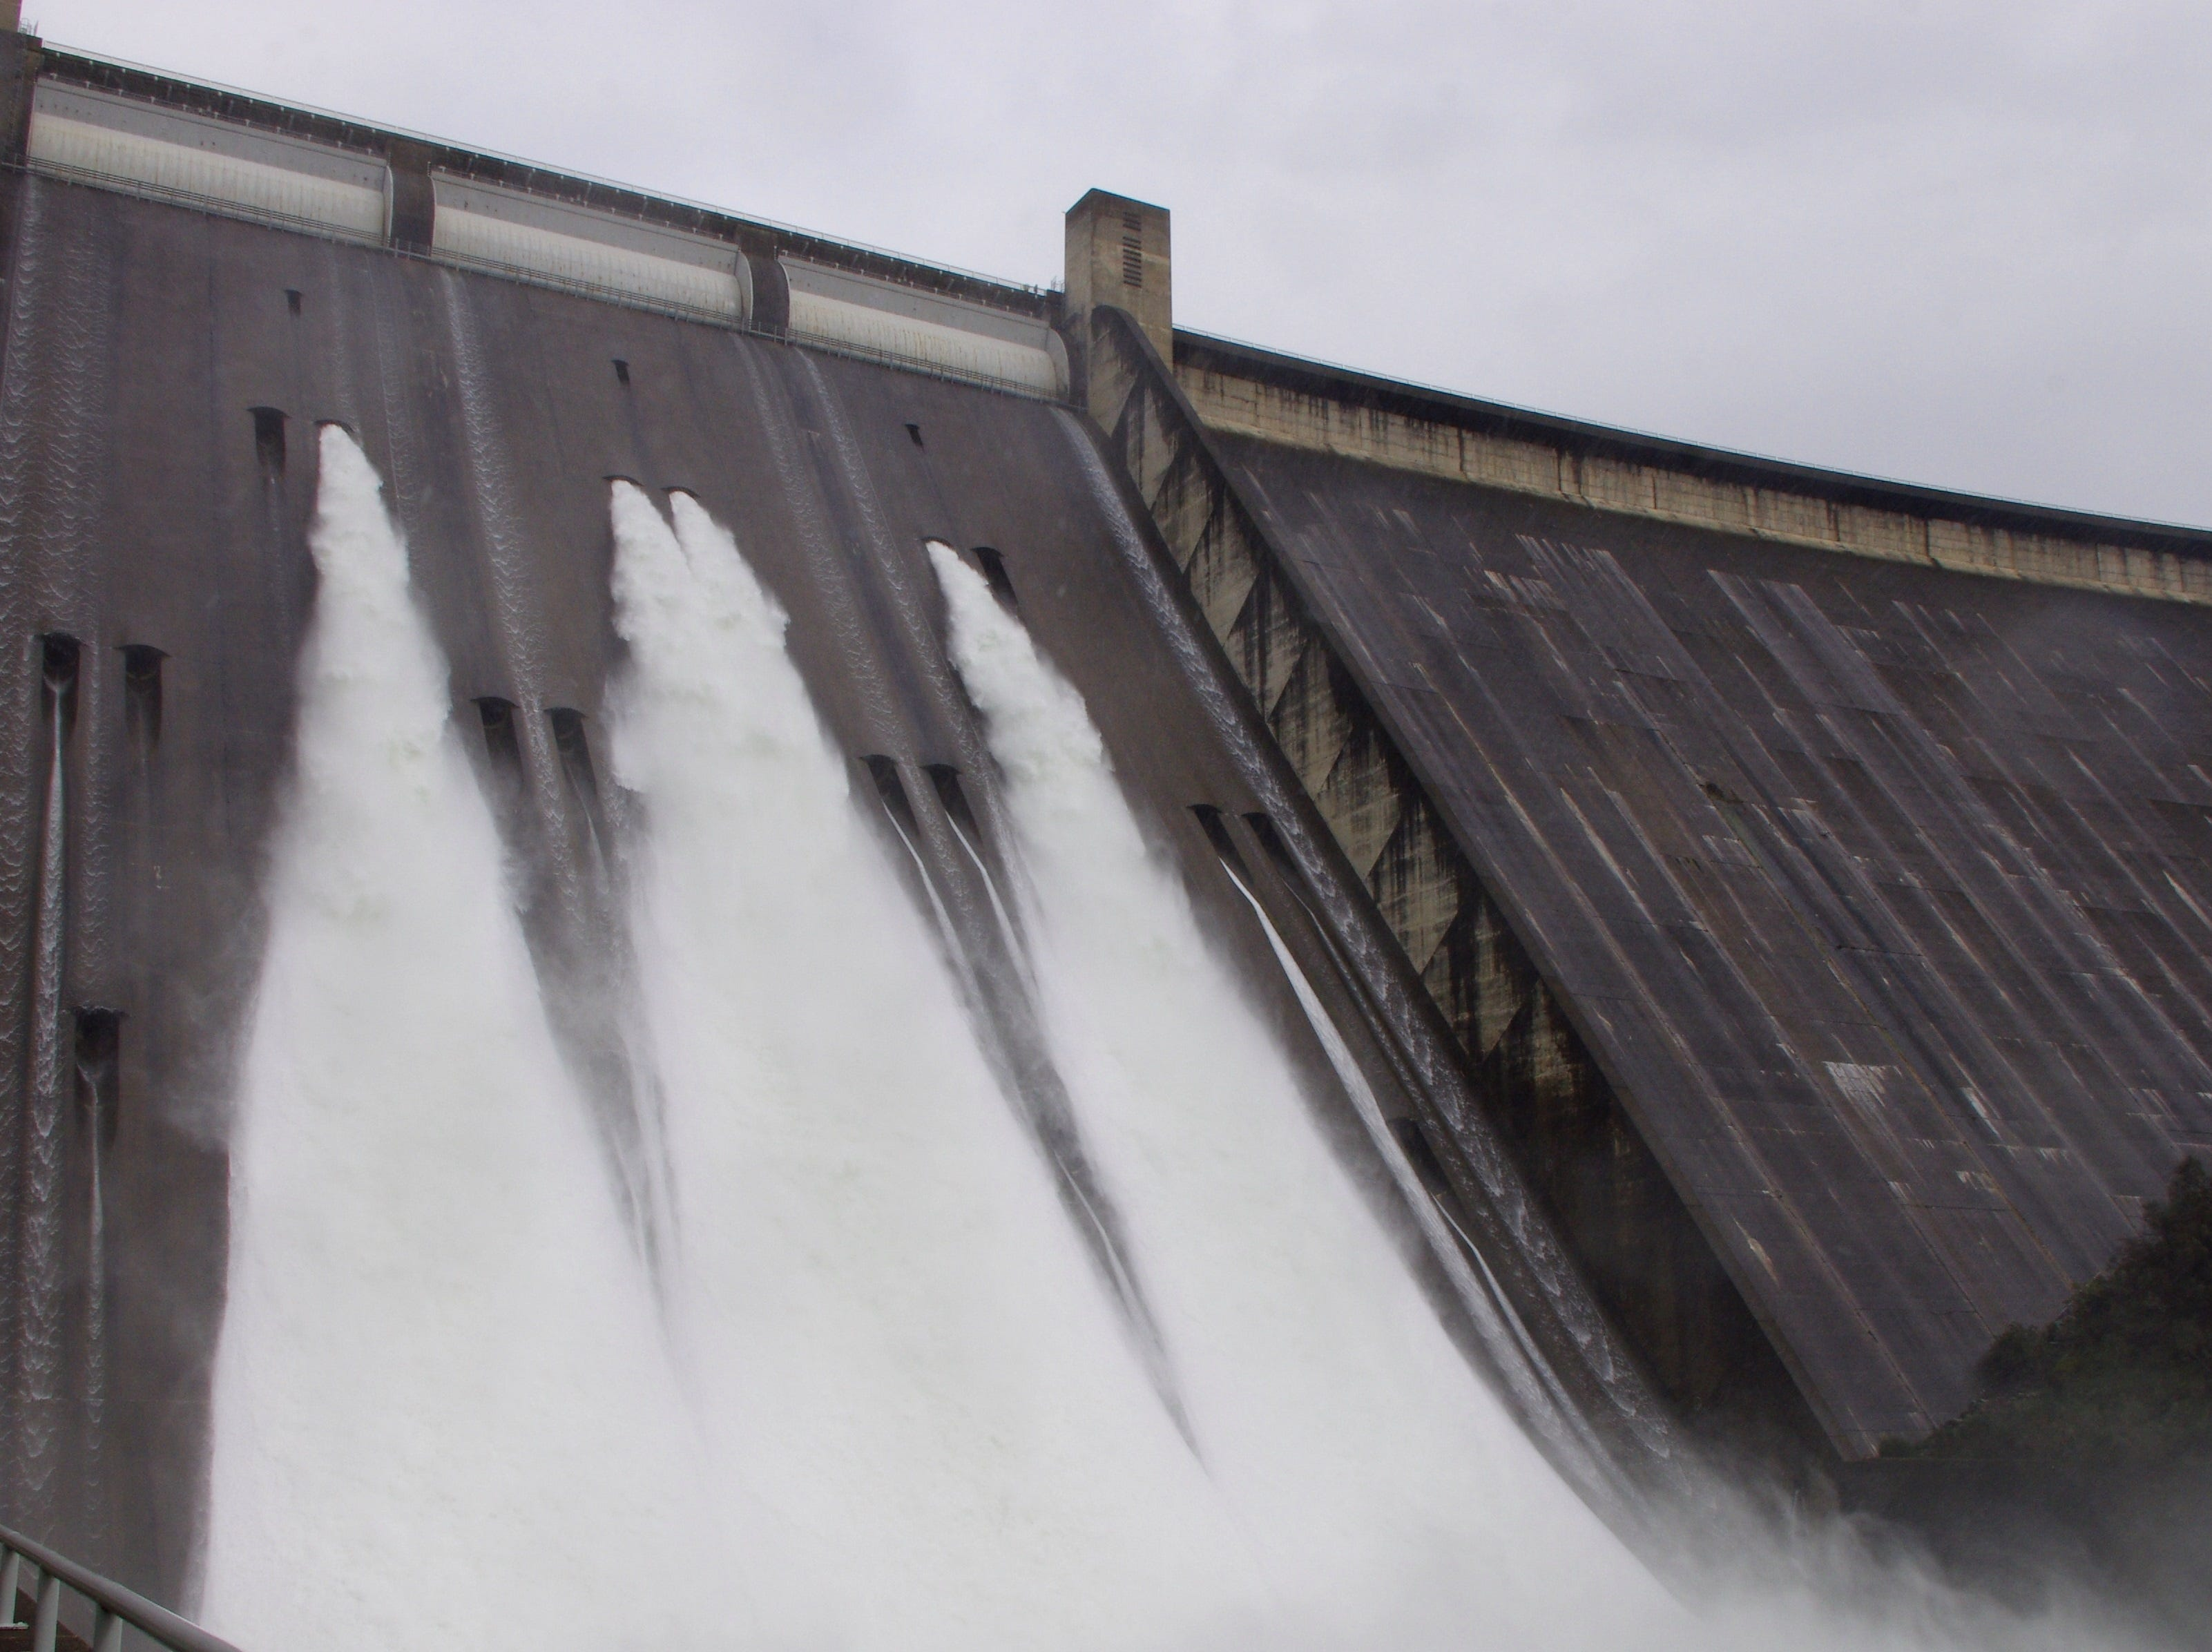 Ports on the Shasta Dam spillway send thousands of gallons of water down the face of the dam Monday. The amount of water released rose to 30,000 cubic-feet per second.